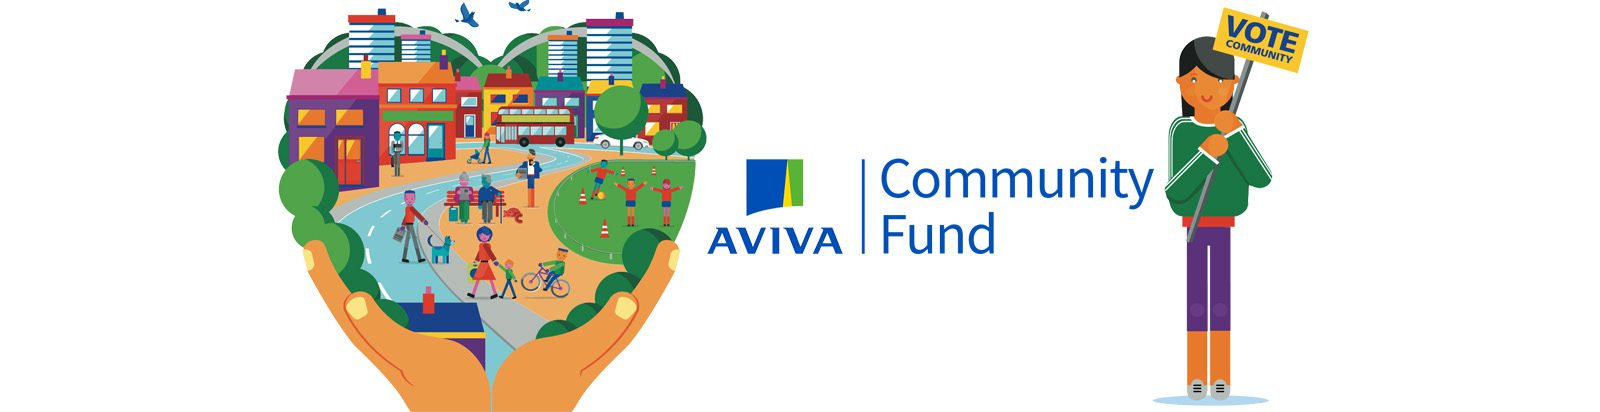 We've entered the Aviva Community Fund vote!